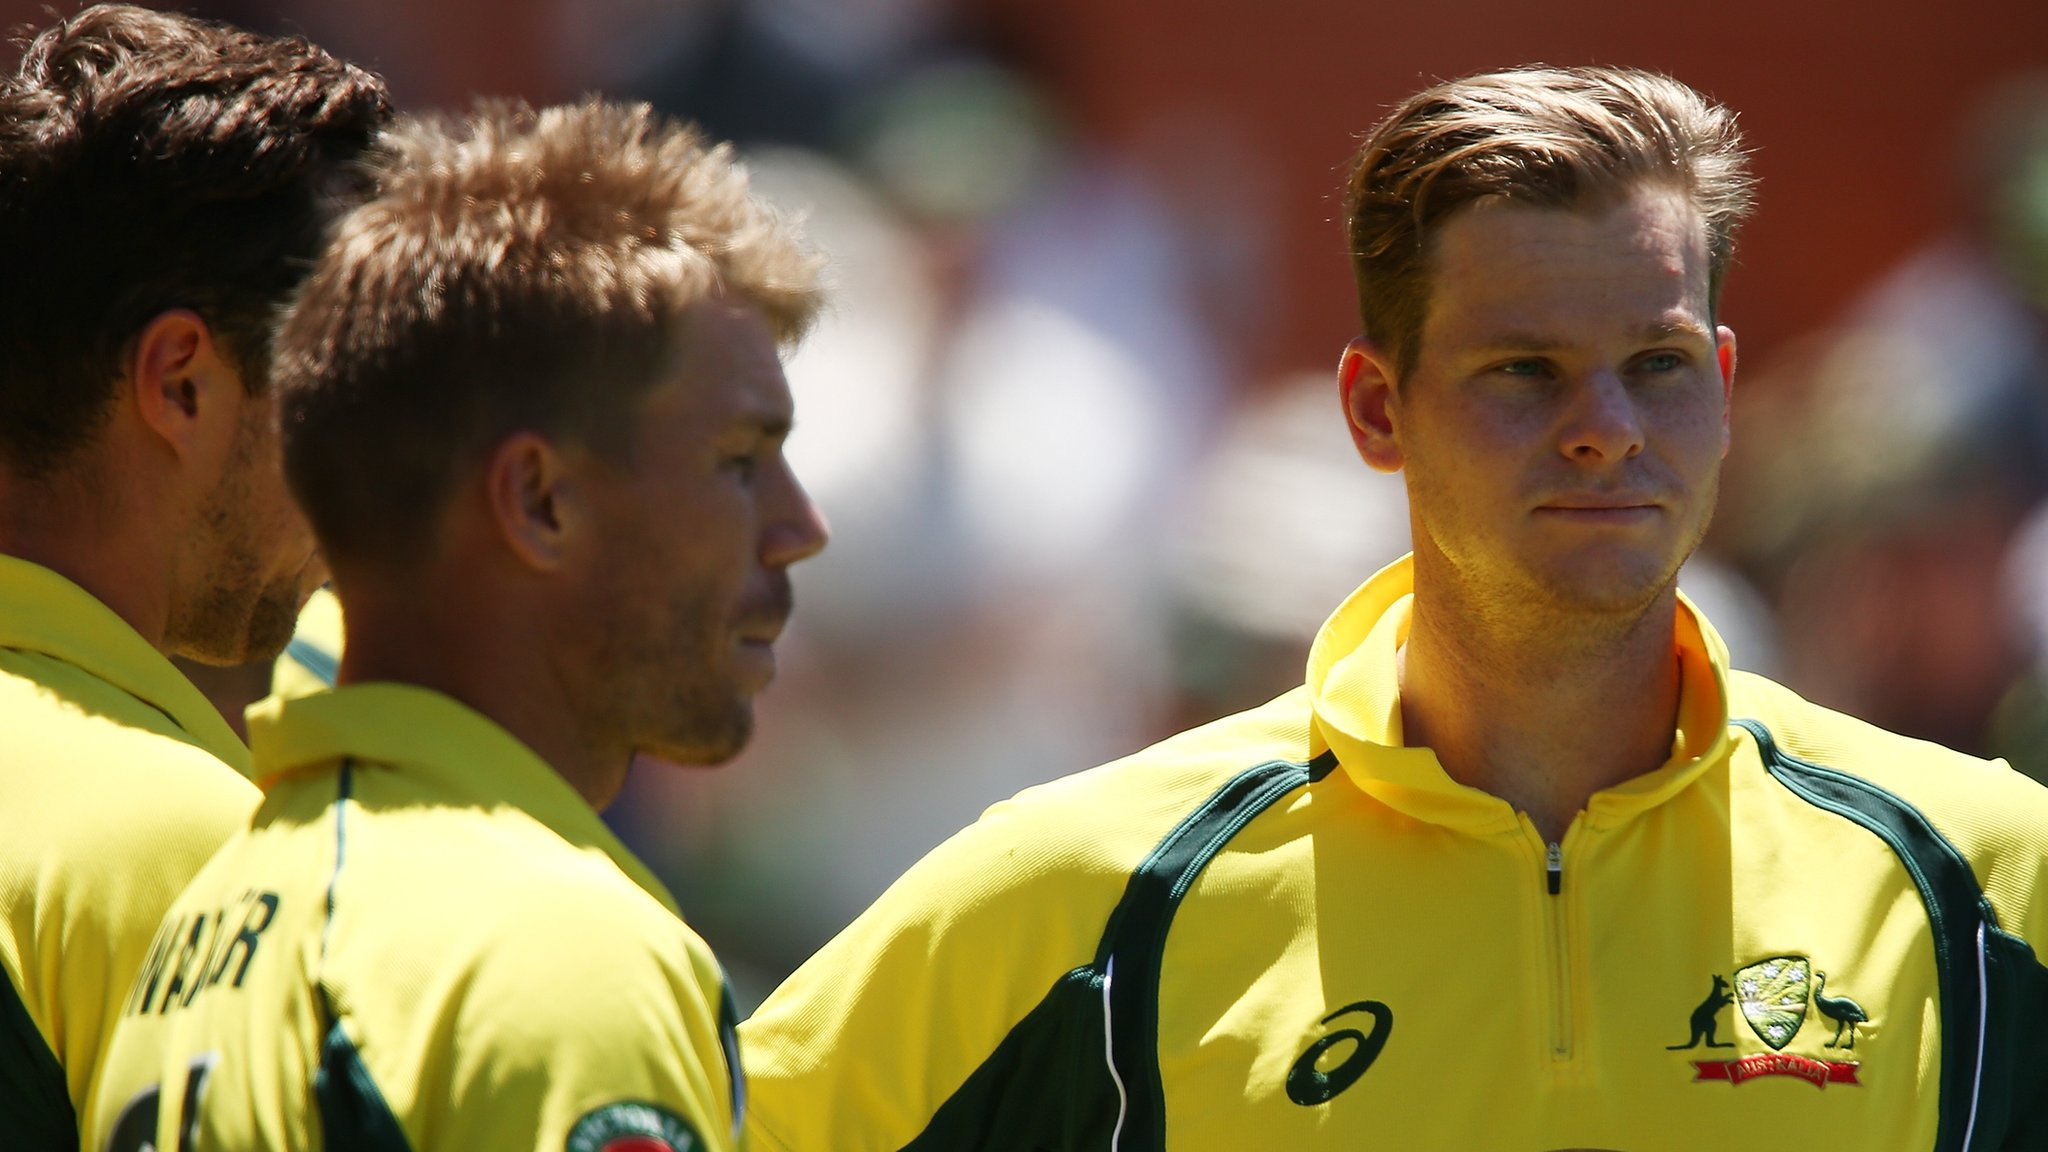 Aussie players told: resolve pay dispute next week or a judge decides